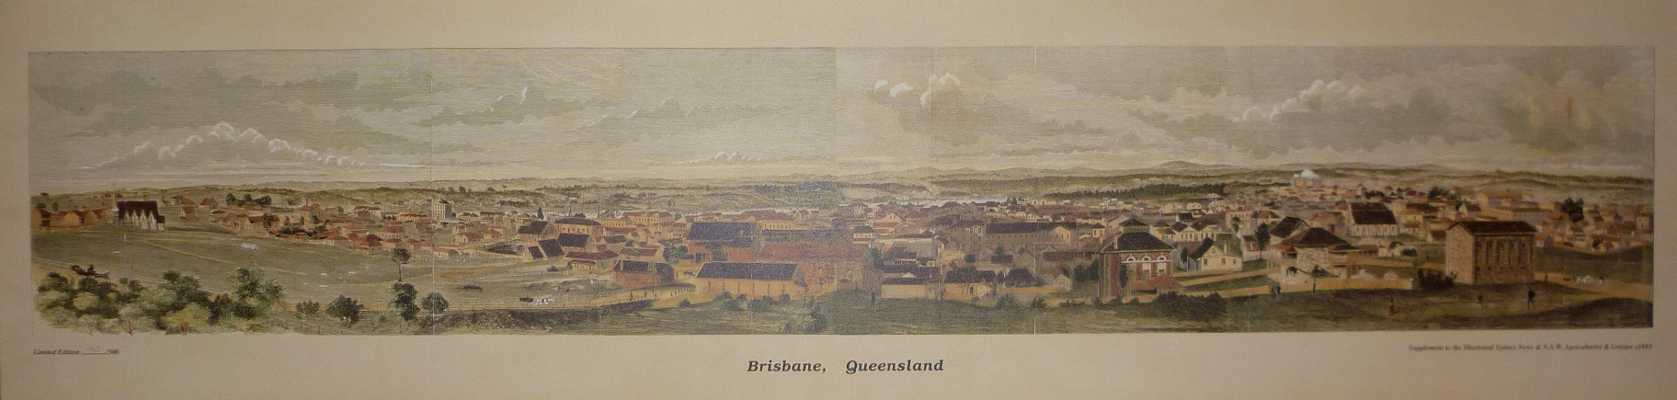 Brisbane, Queensland circa 1885. Limited Edition long panorama of Brisbane